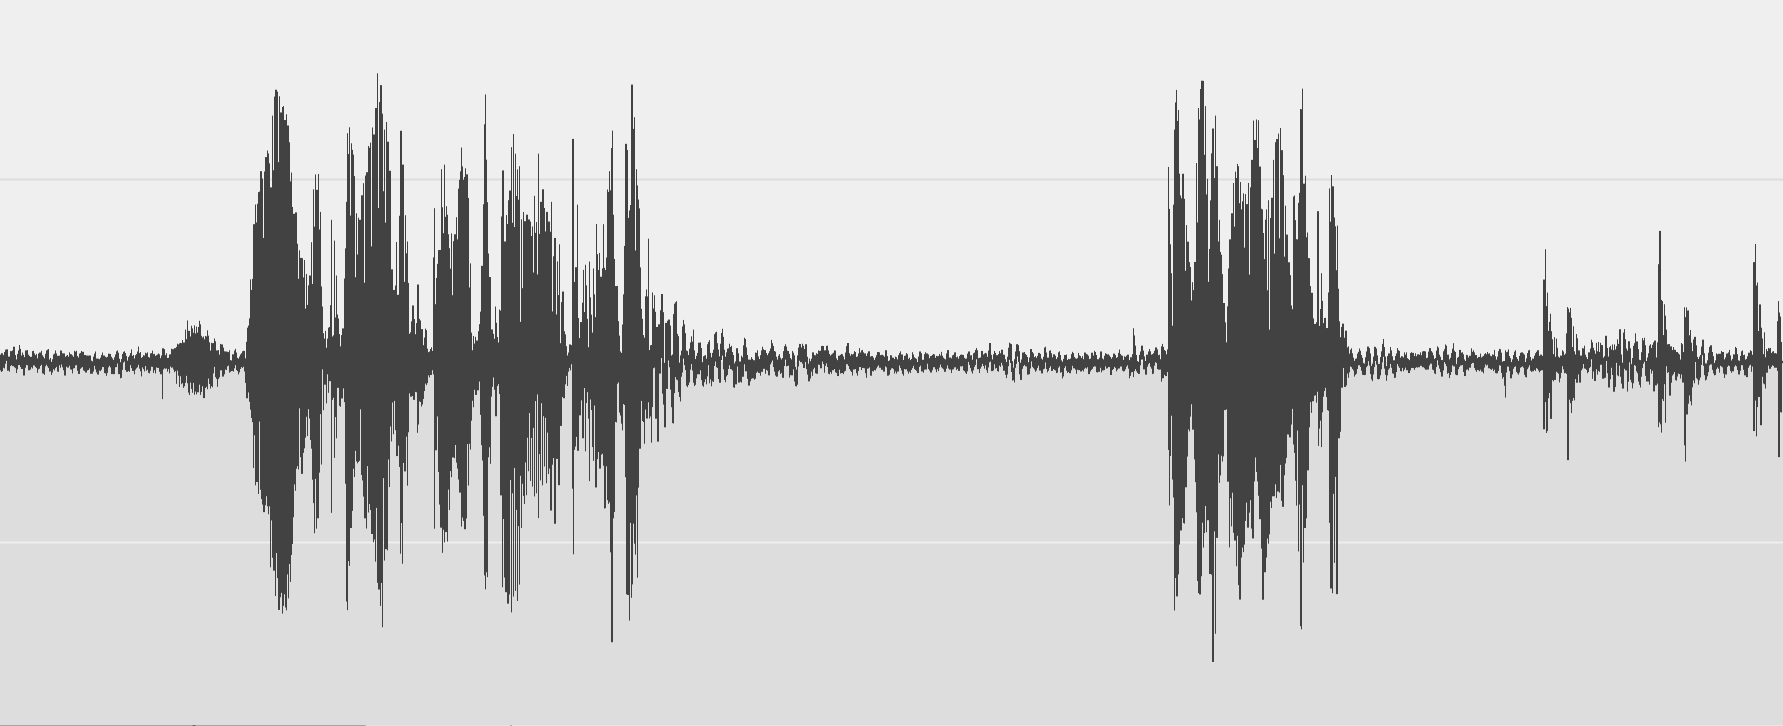 A Podcaster's Guide To Noise Reduction - Joe Nash - Medium